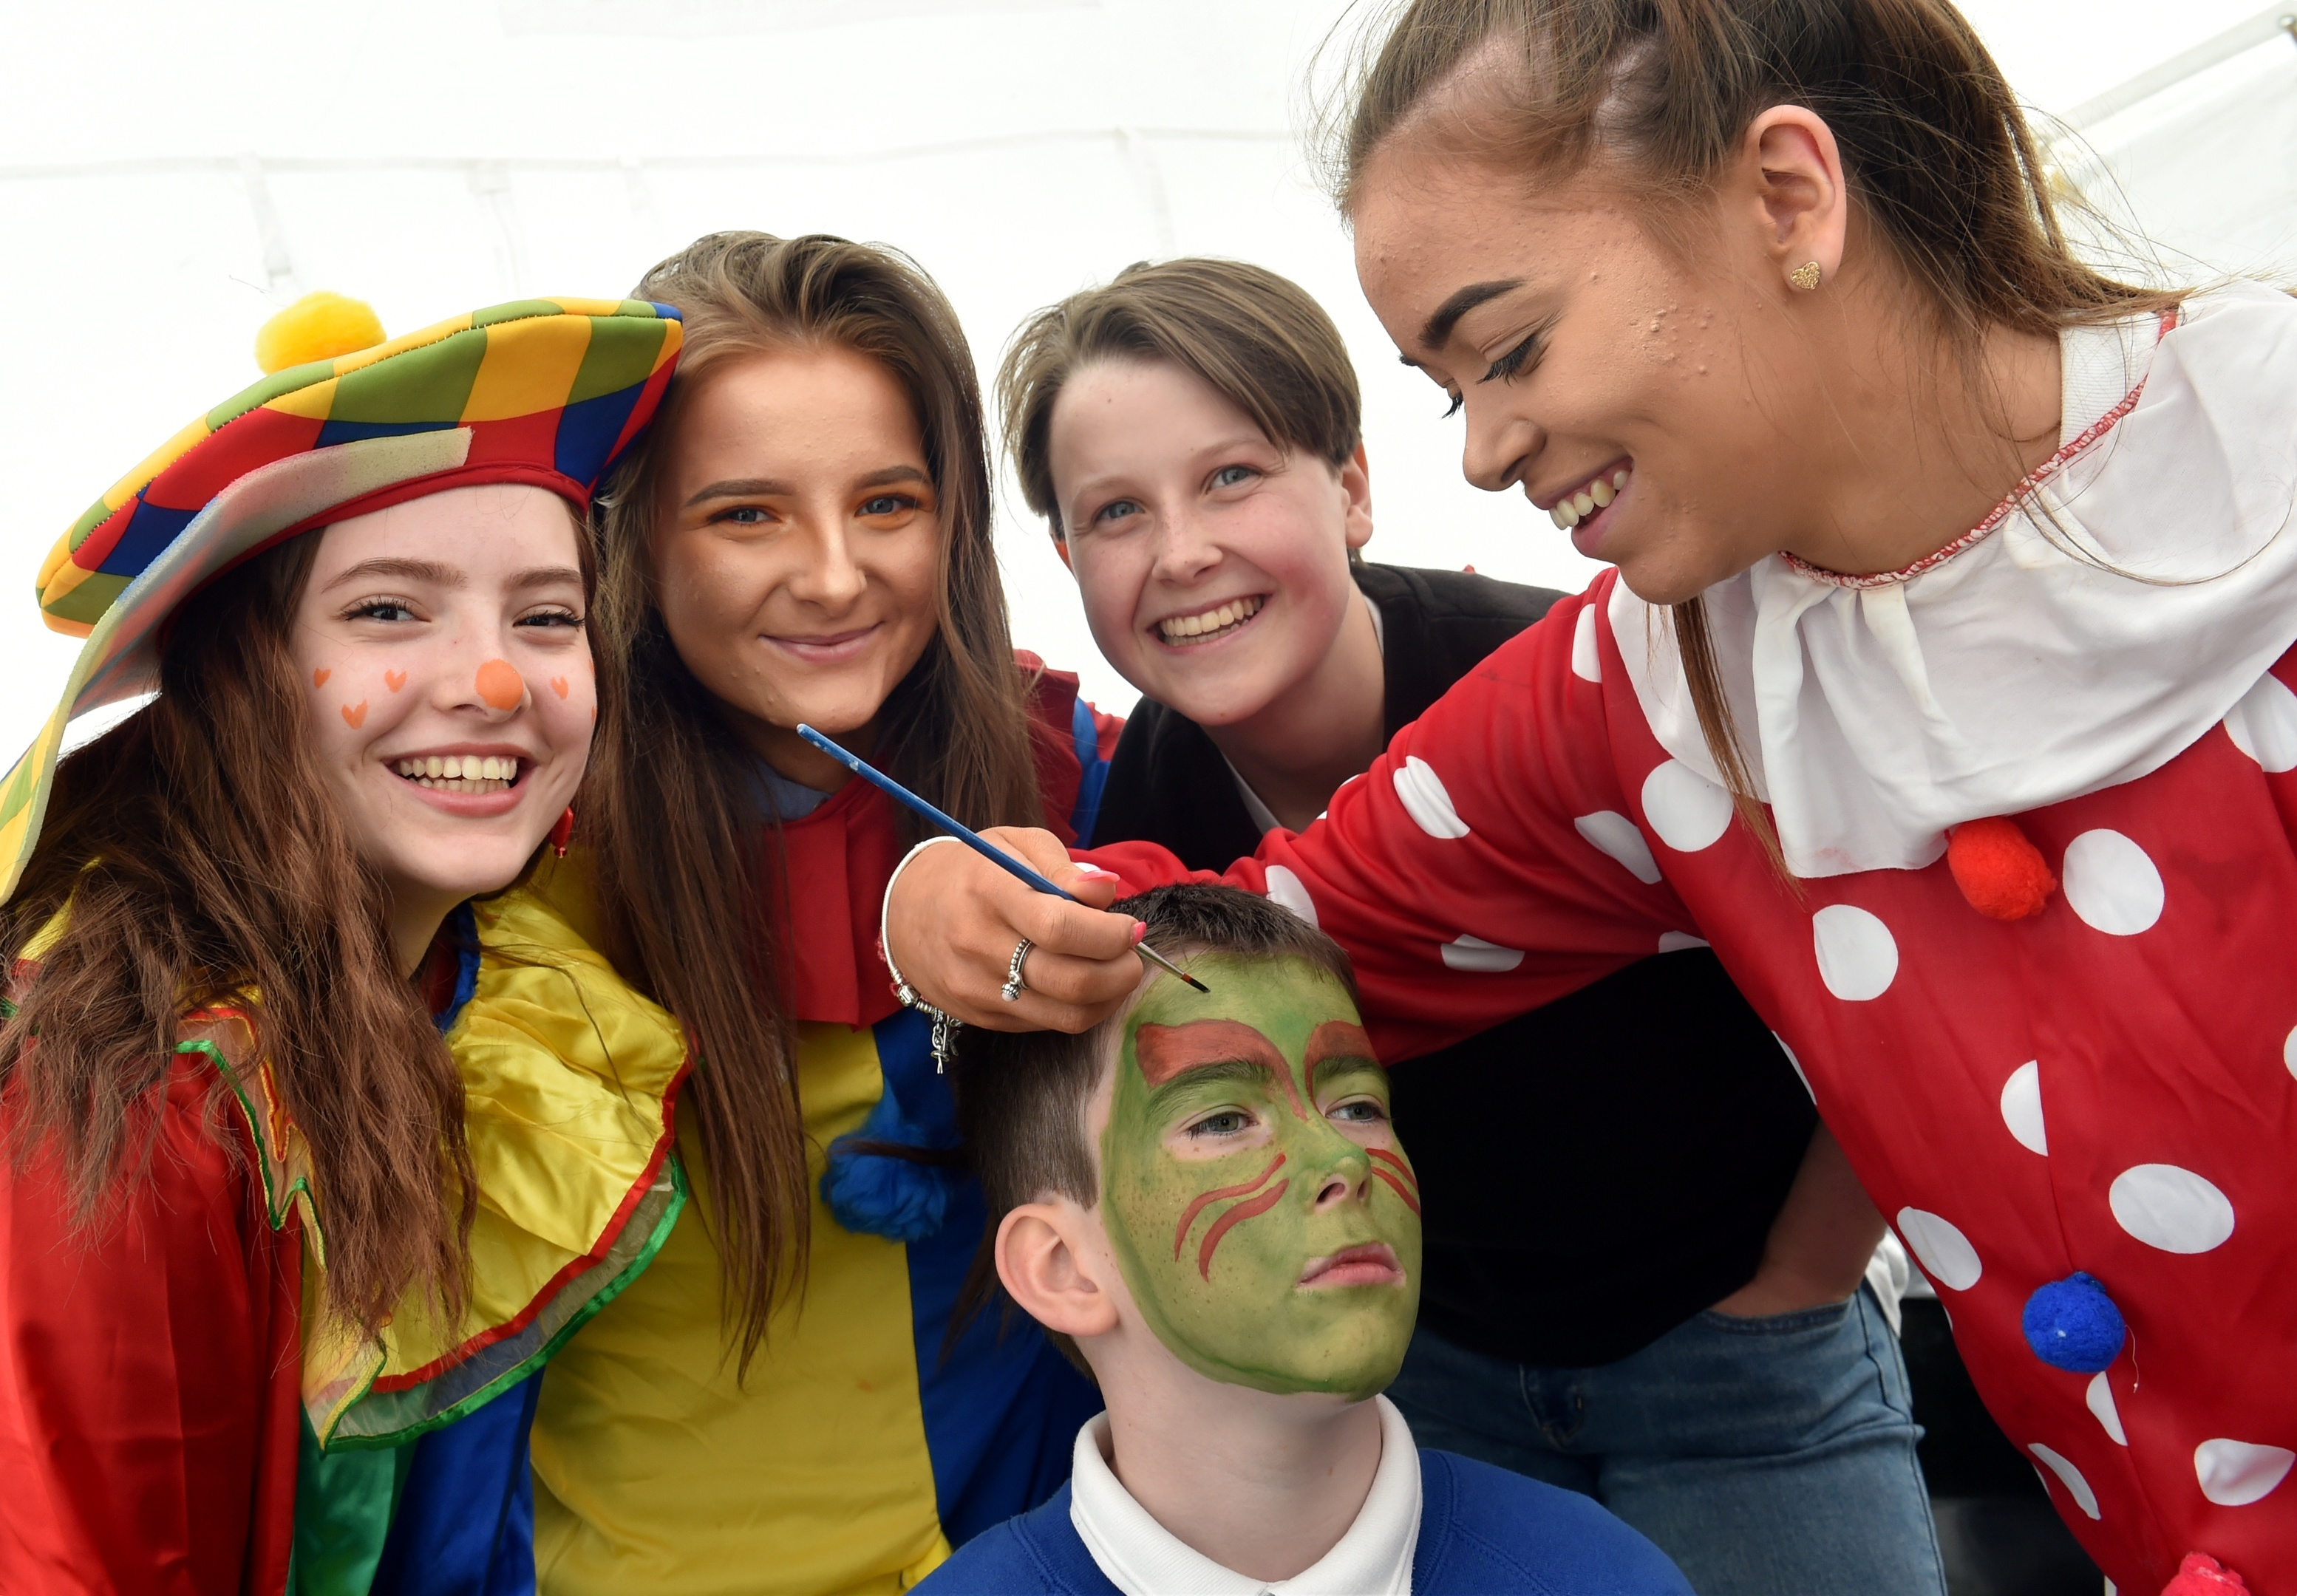 Rotary KidsOut was held at Craibstone. Declan Taylor 11 gets his face painted by (from left) Leire Hernandez, Heather Bowie, Cara Fyfe and Katie McDougall. Picture by COLIN RENNIE  June 13, 2018.